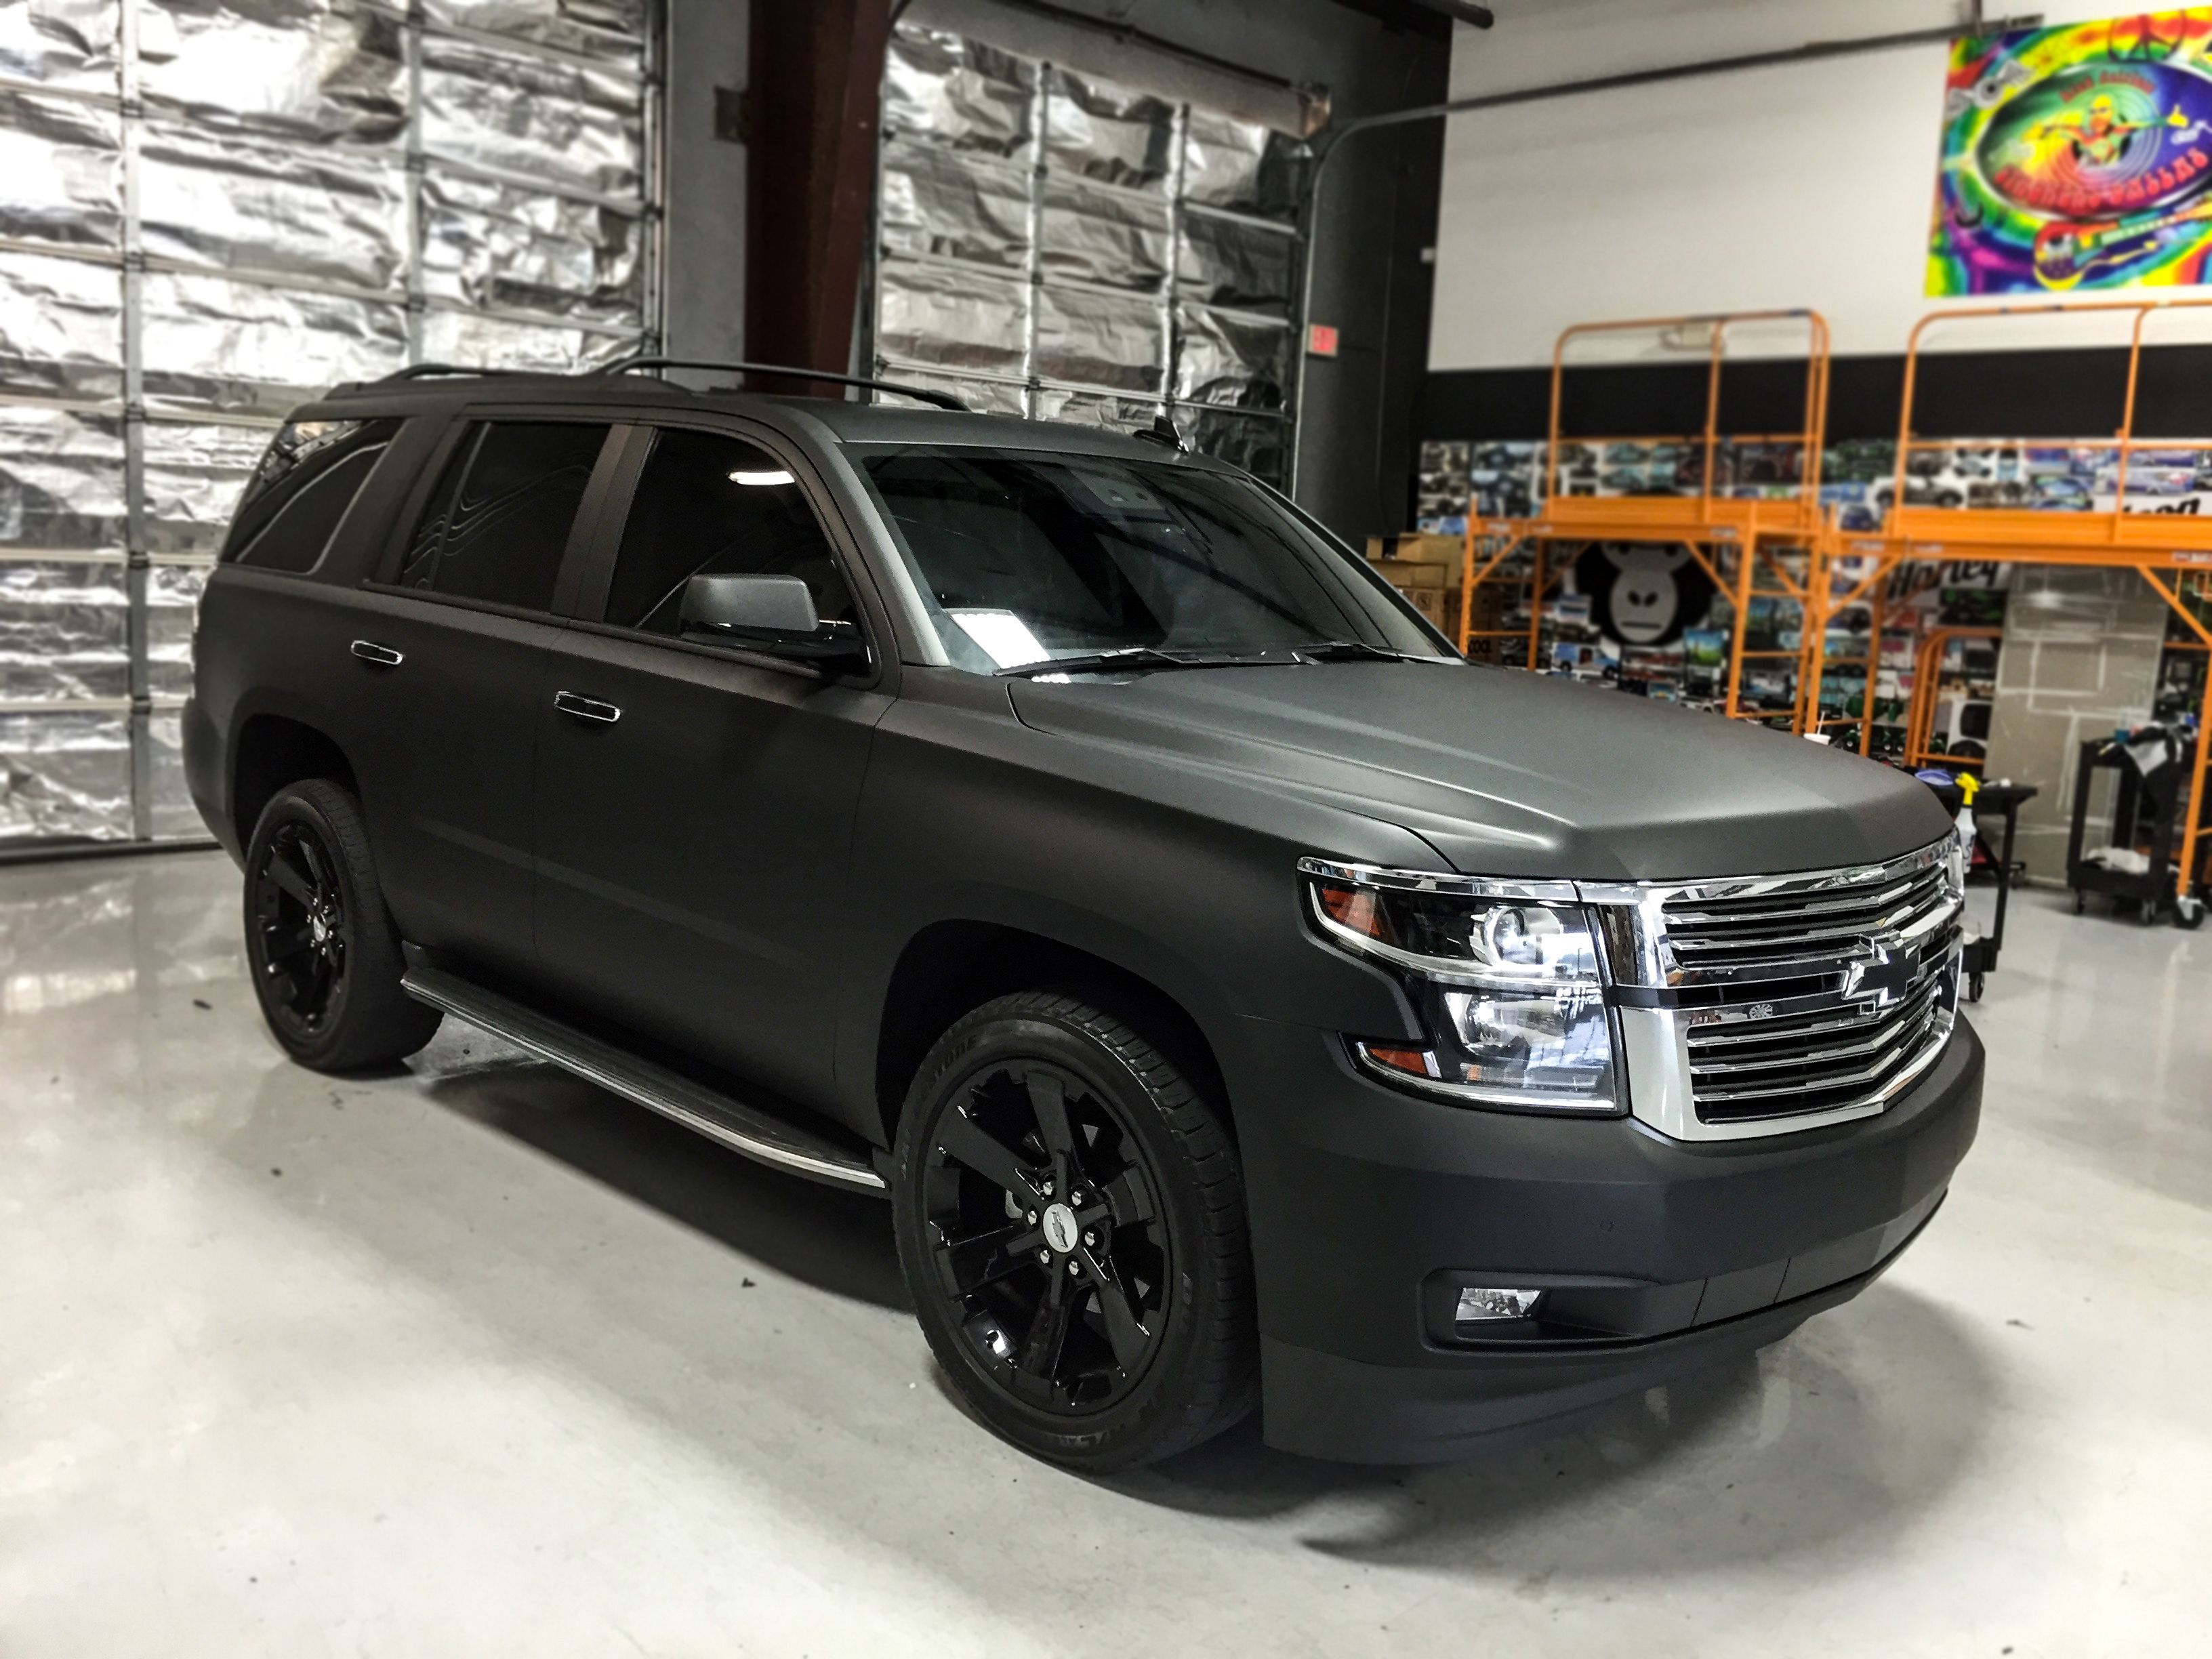 Matte Black Tahoe Yahoo Image Search Results Black Truck Chevy Trucks Matte Cars